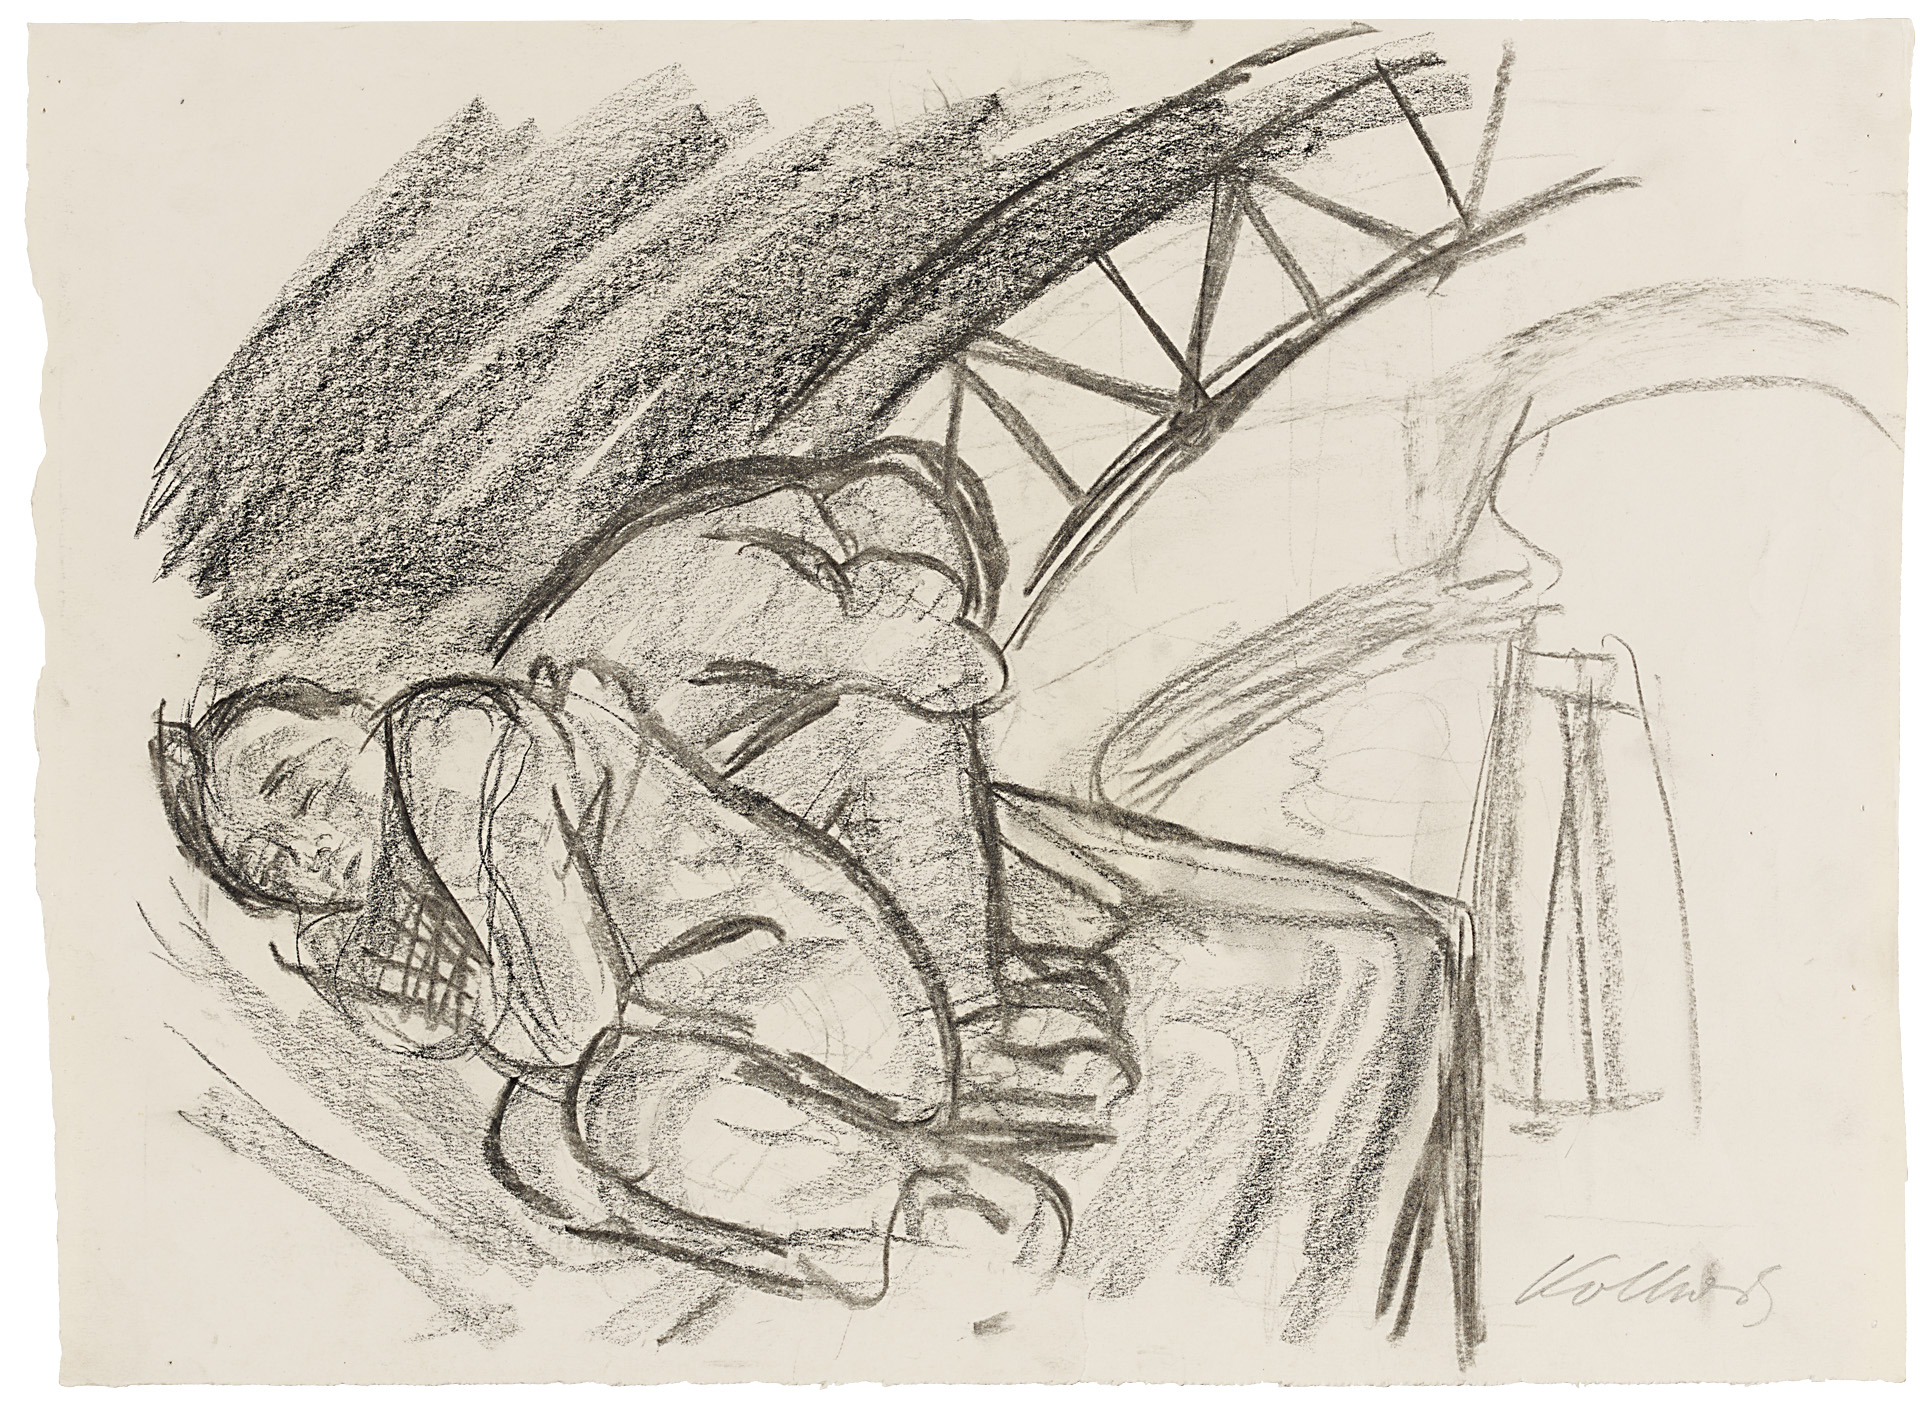 Käthe Kollwitz, Under the Arch of the Bridge, 1928, charcoal and black chalk, blotted, on drawing paper, NT 1161, Cologne Kollwitz Collection © Käthe Kollwitz Museum Köln